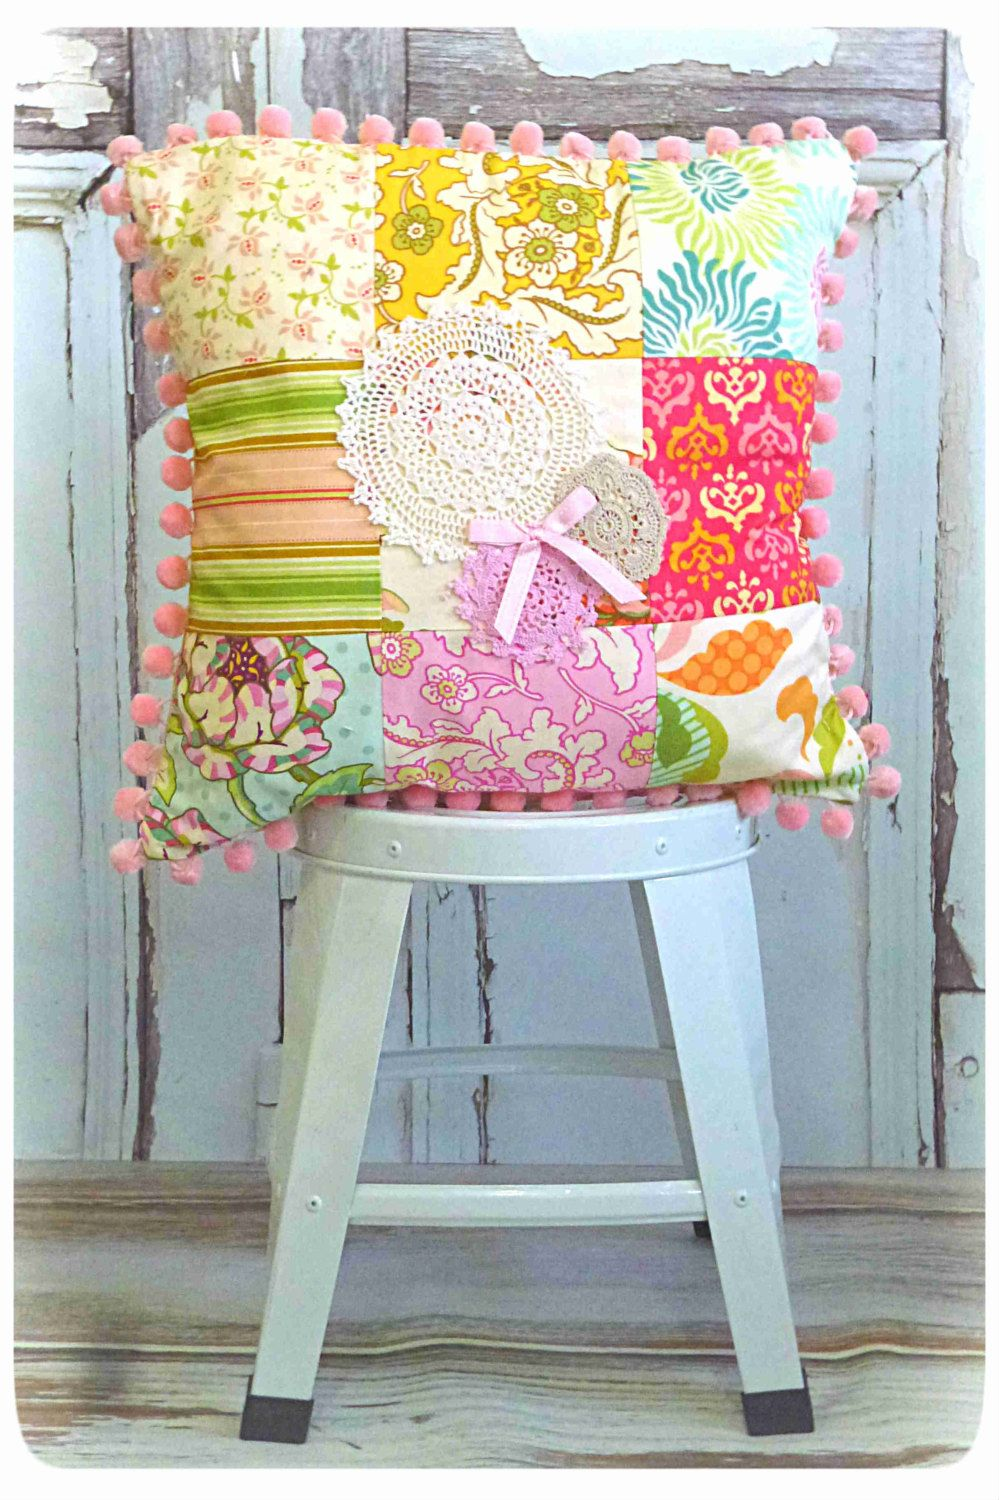 Freshcut Square Scatter Cushion - Little Girls Room Decor - Shabby Chic Vintage Doilie